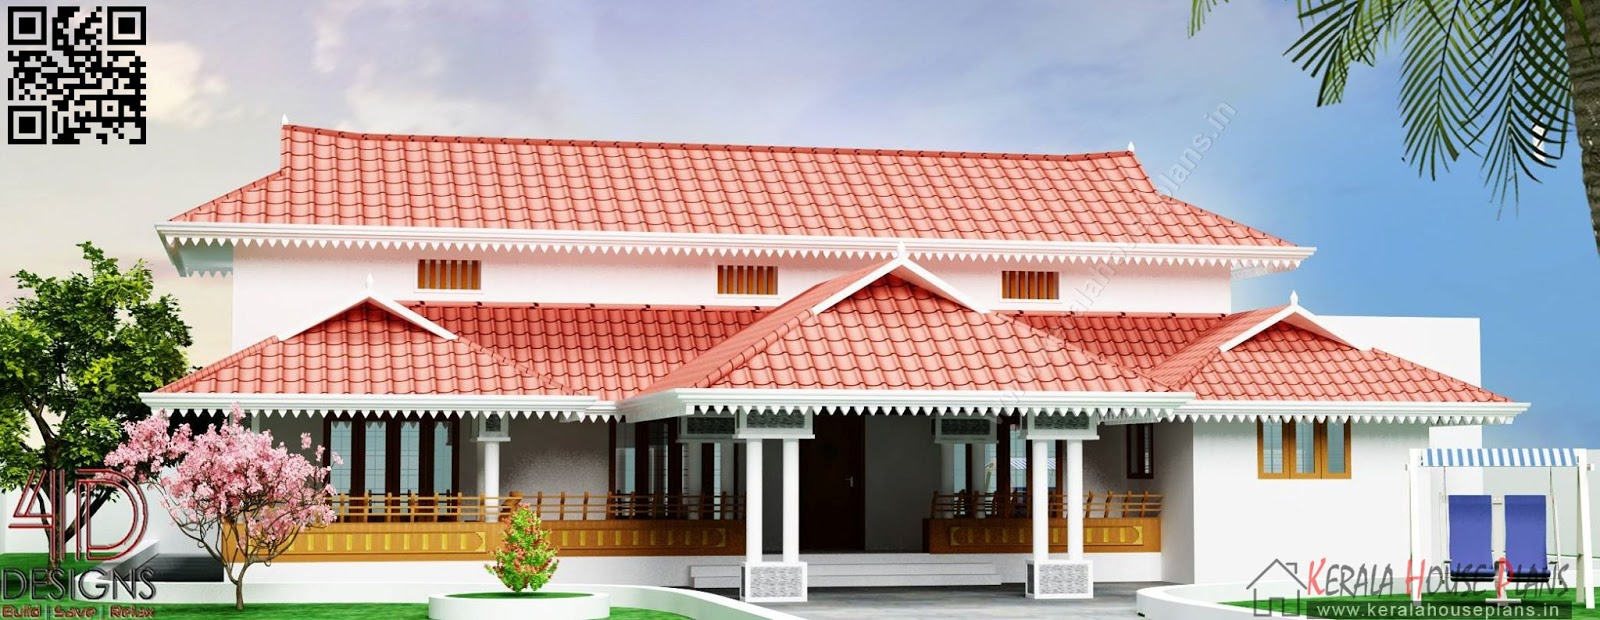 kerala traditional home design